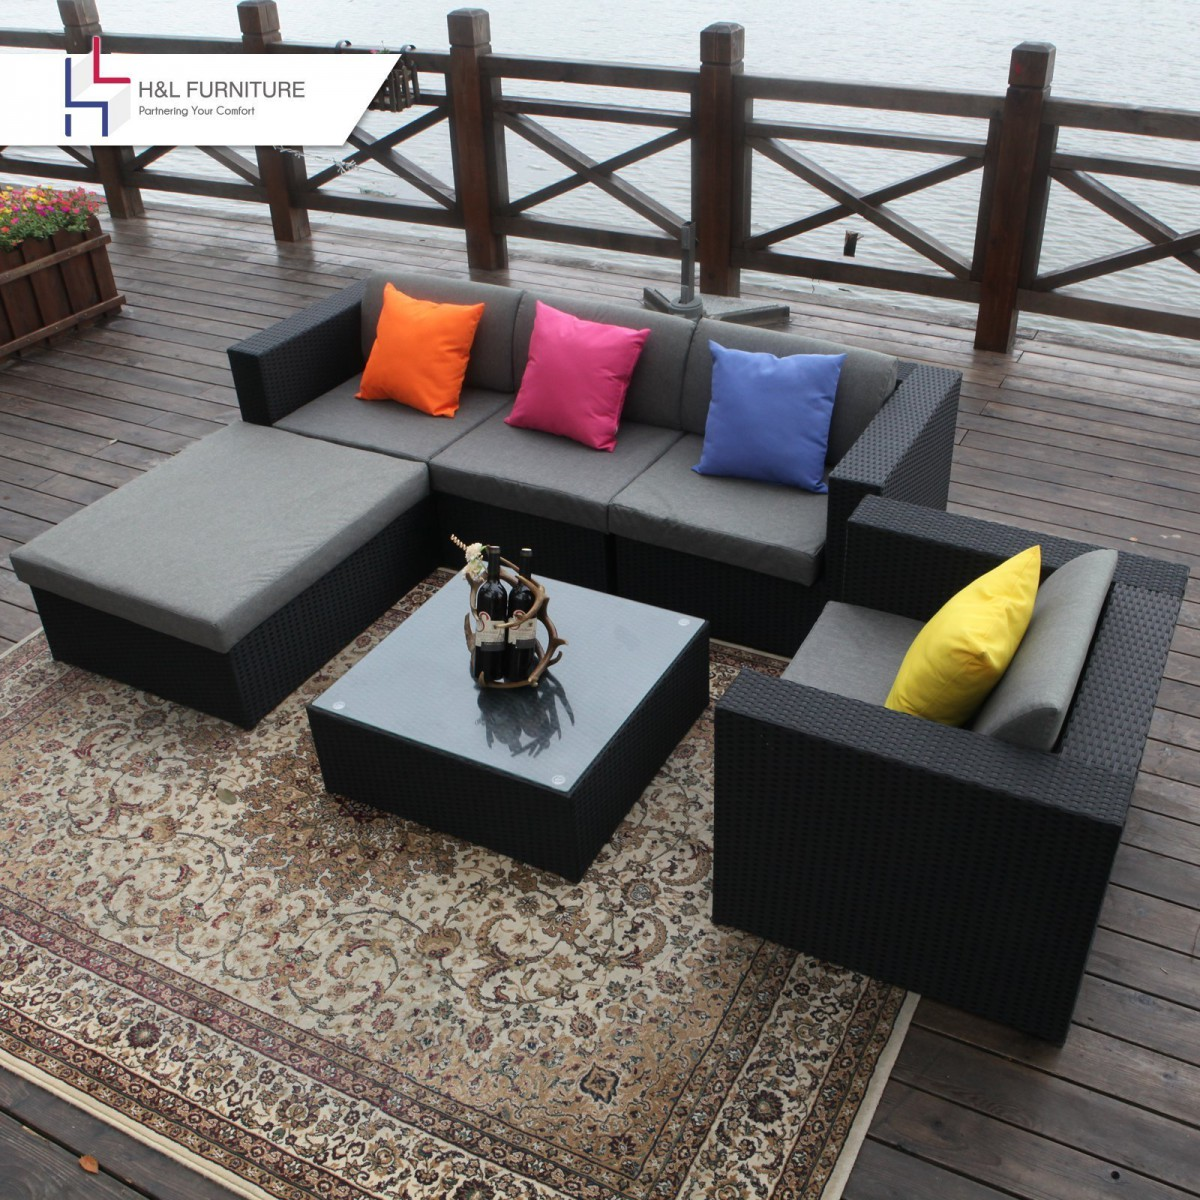 Black Wicker Coffee Table: H&L Patio Black 6 Piece Wicker Sectional Sofa Set With